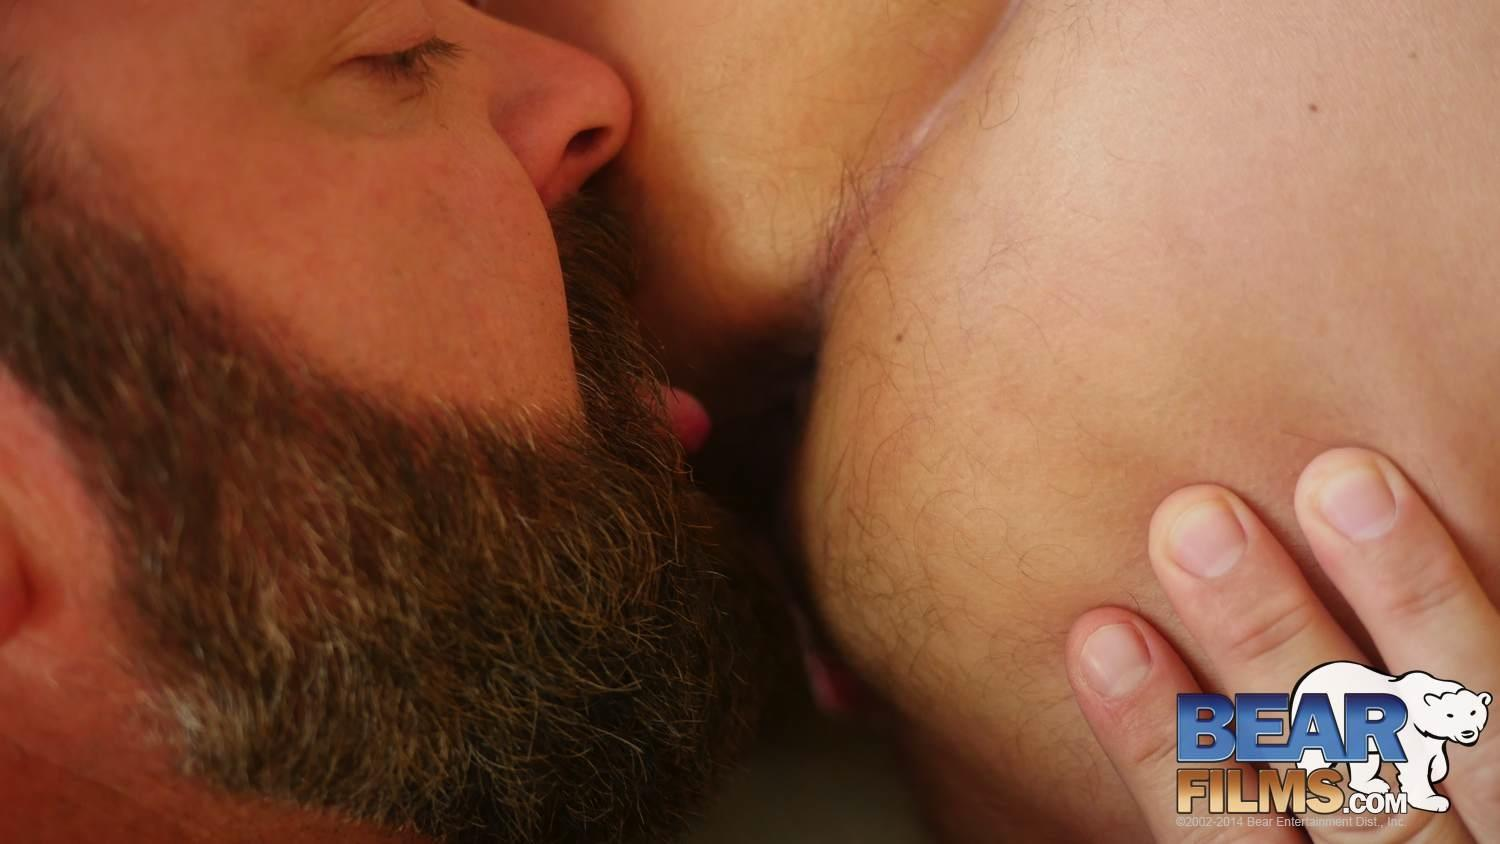 Bear Films Kroy Bama and Cooper Hill Hairy Chubby Bears Fucking Bearback Amateur Gay Porn 22 Hairy Chubby Bears Kroy Bama and Cooper Hill Raw Fucking